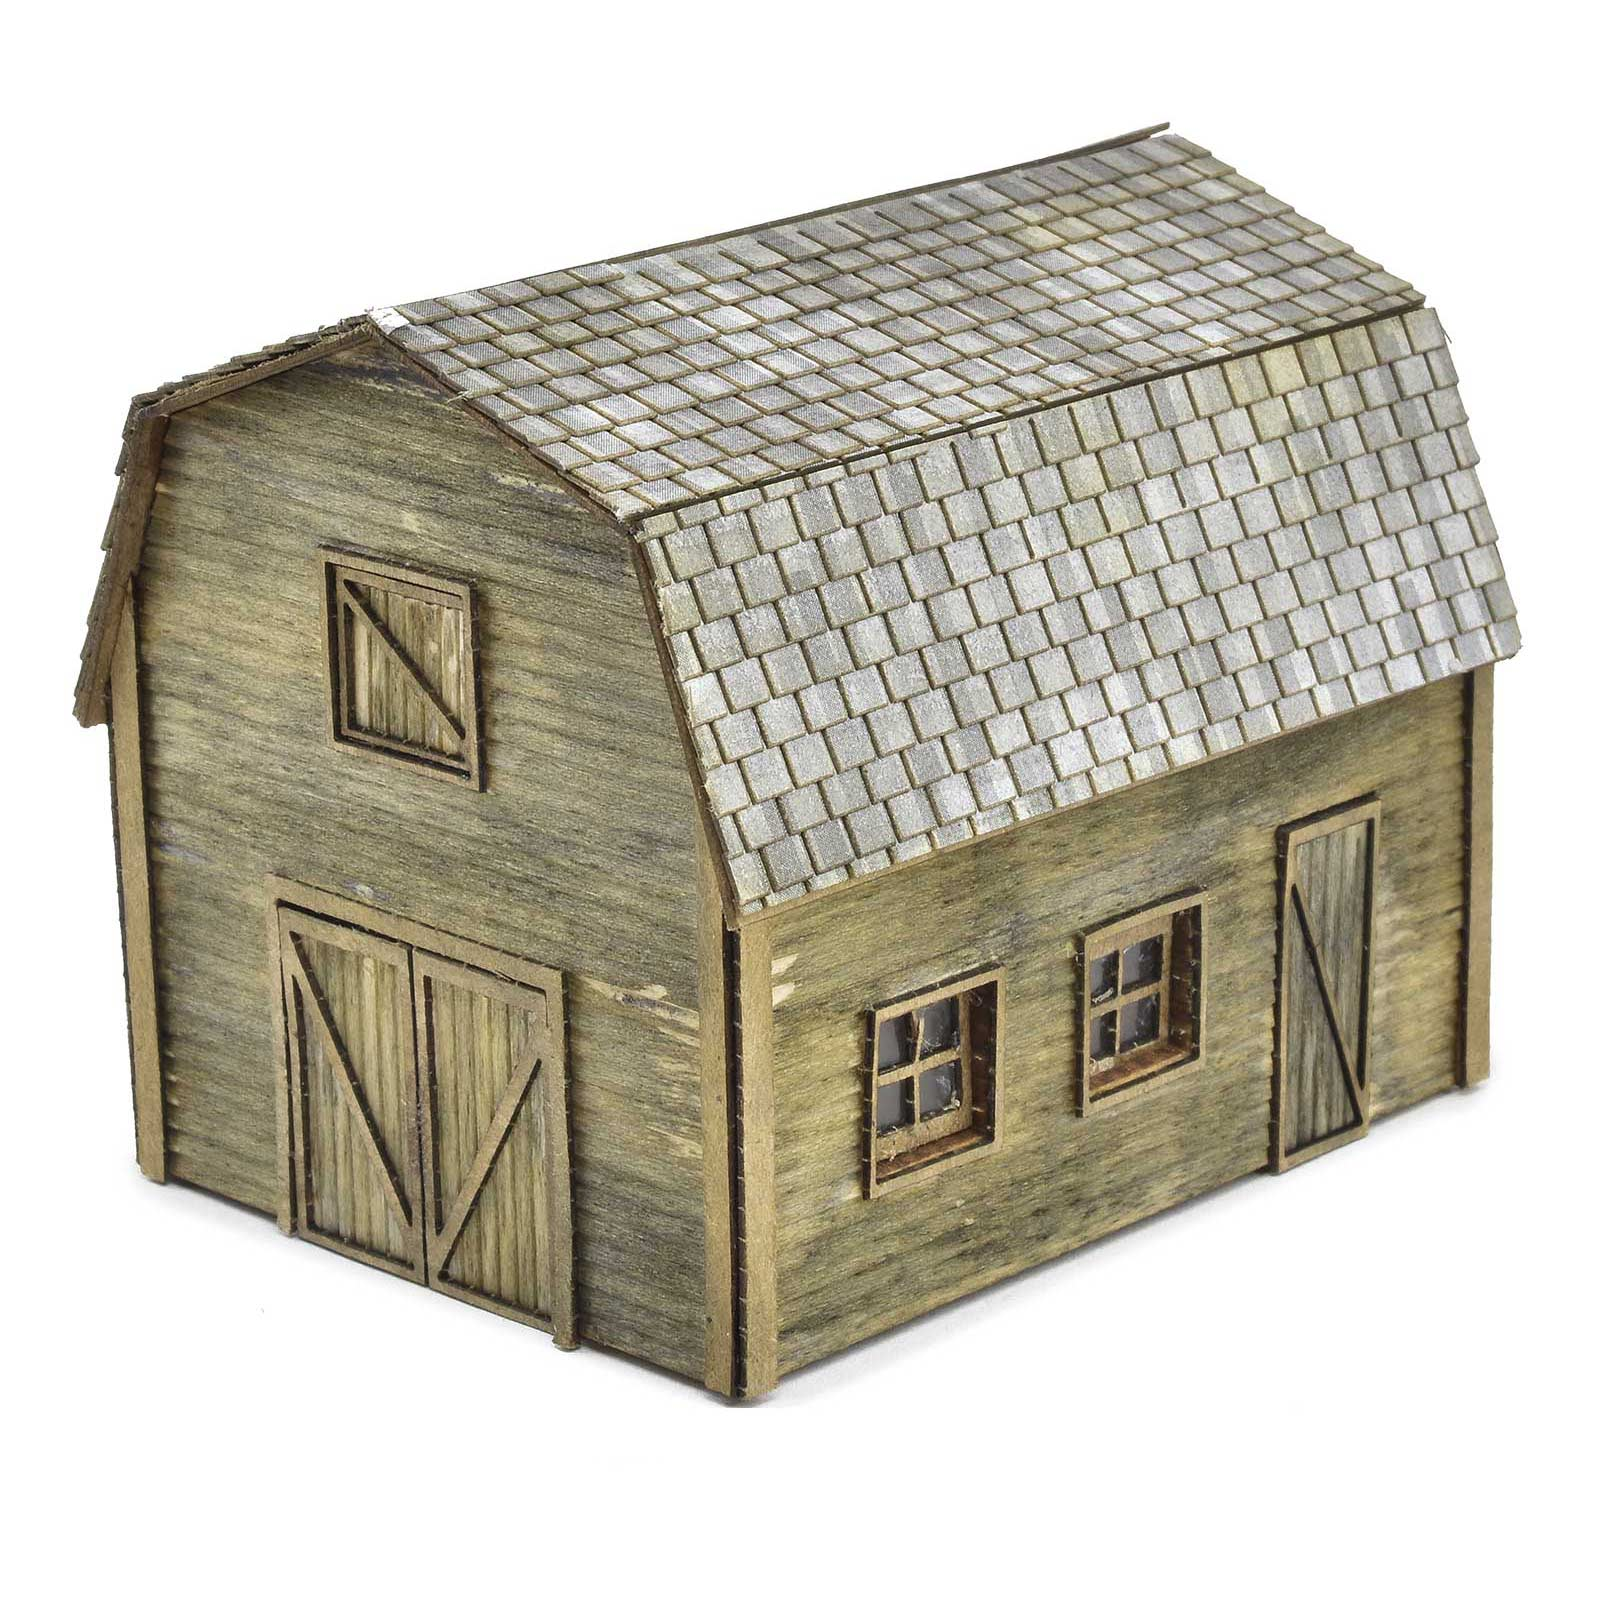 Shed with Hayloft Kit